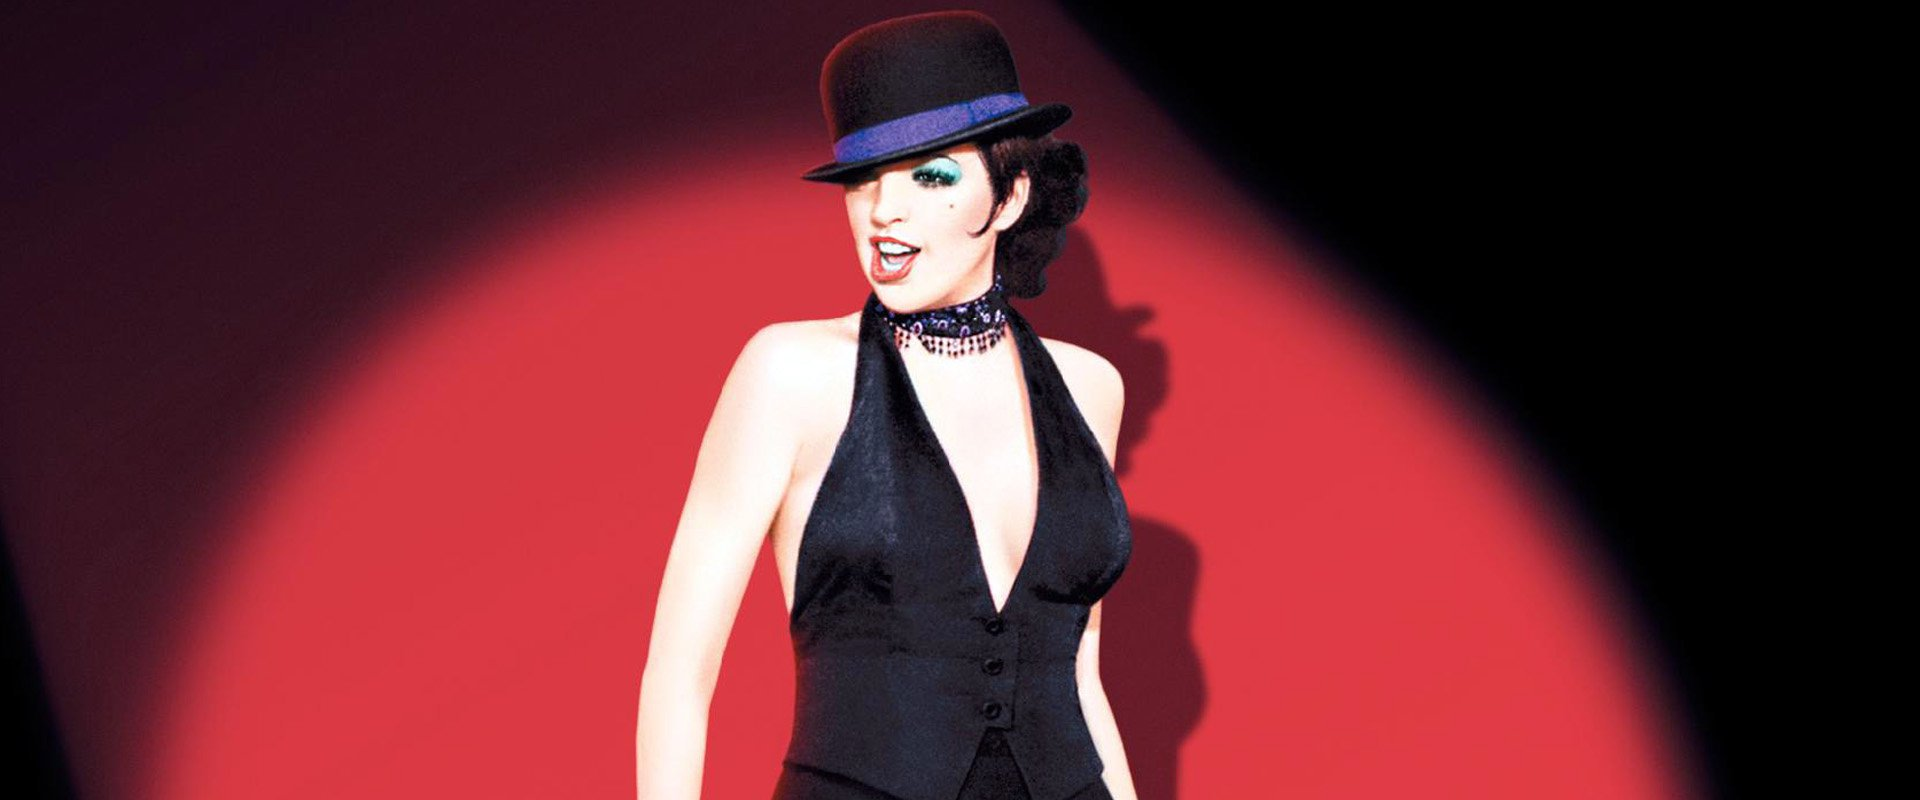 Liza Minelli singing dressed in show girl clothes